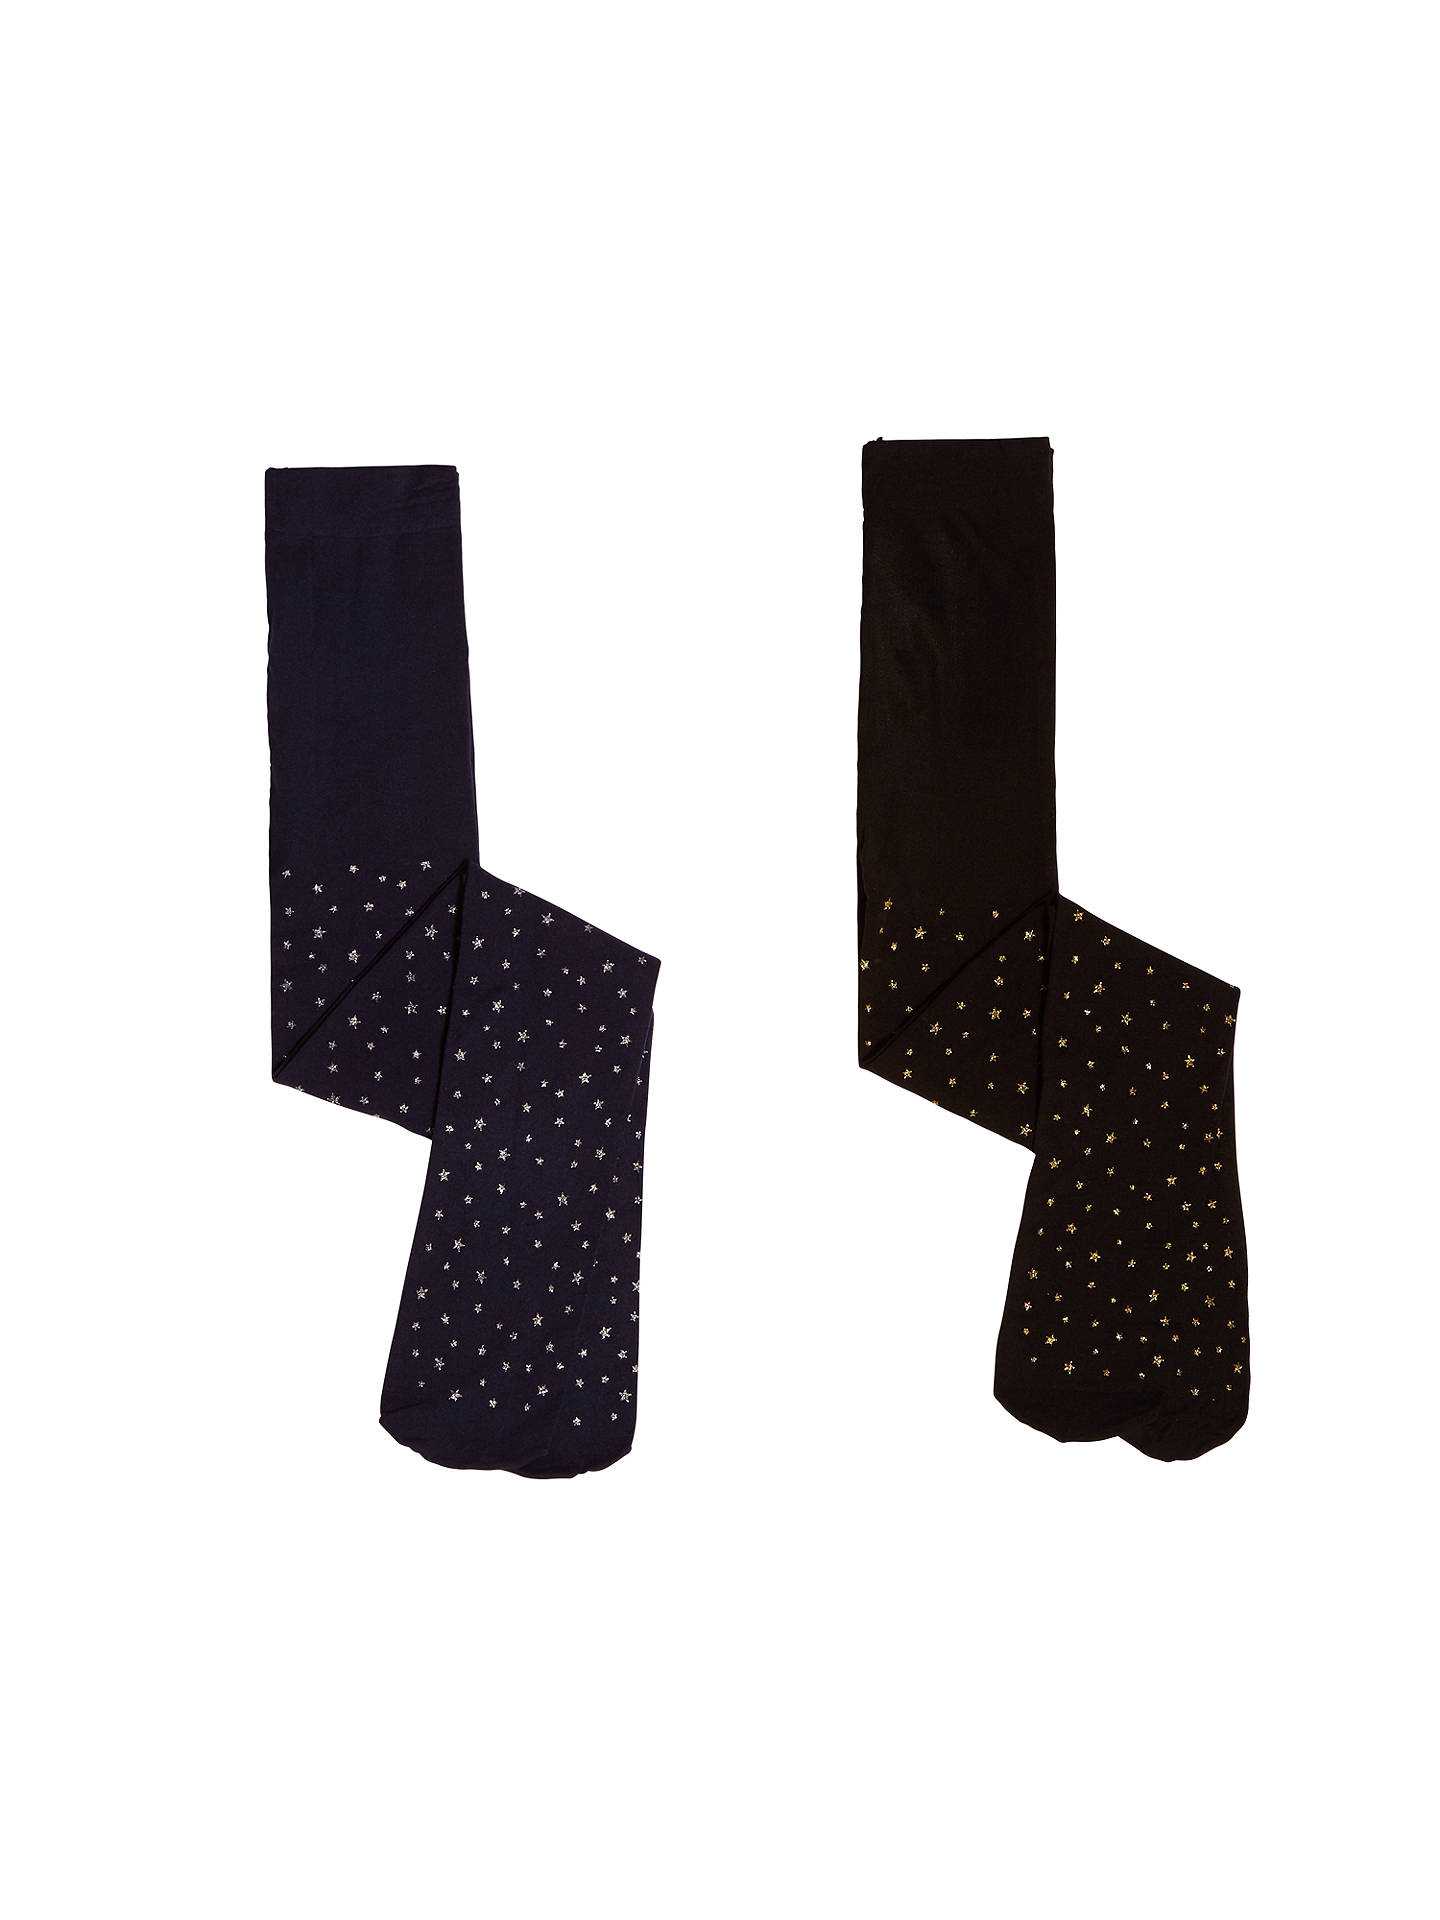 992c195ccf3a6 John Lewis & Partners Girls' Silver and Gold Star Print Tights, Pack of 2,  Black/Navy